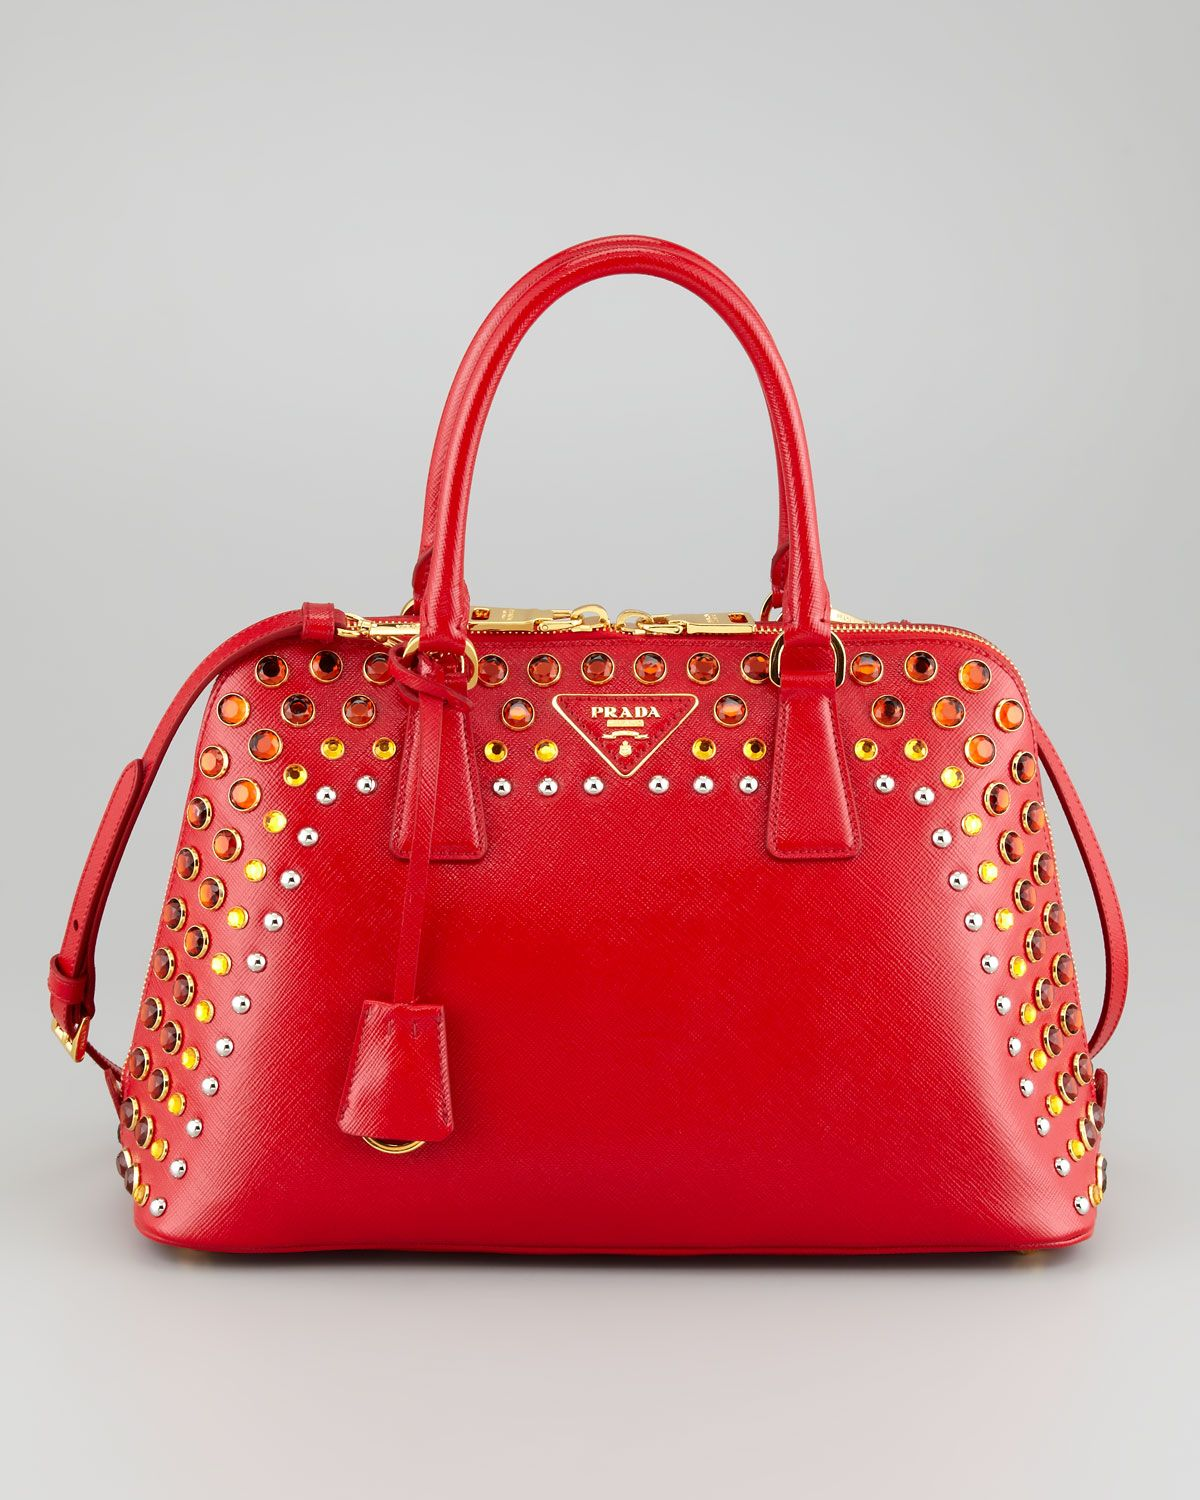 59e1d2db520a ... shopping harrislove prada saffiano crystal studded promenade bag red  orange p 1062.html 29566 9f4b9